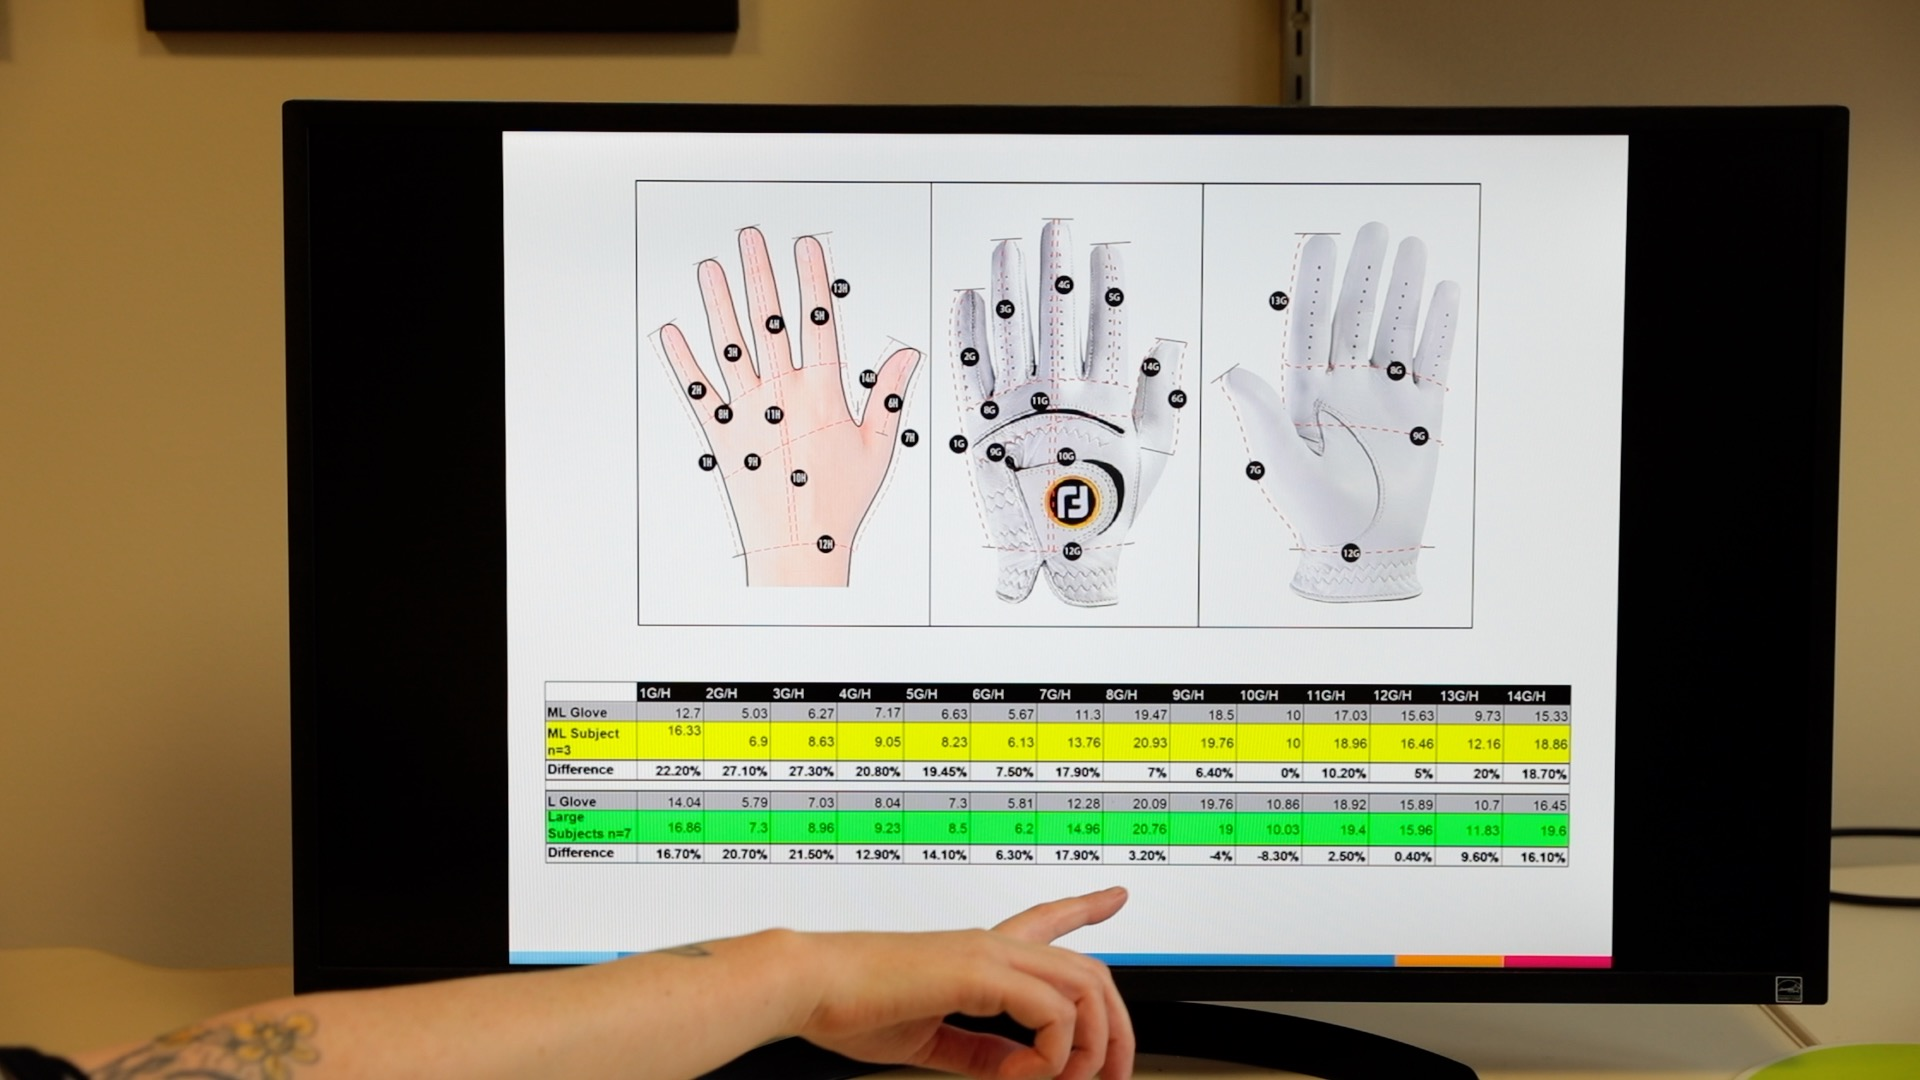 A computer monitor displaying graphics of a hand and a chart of measurements